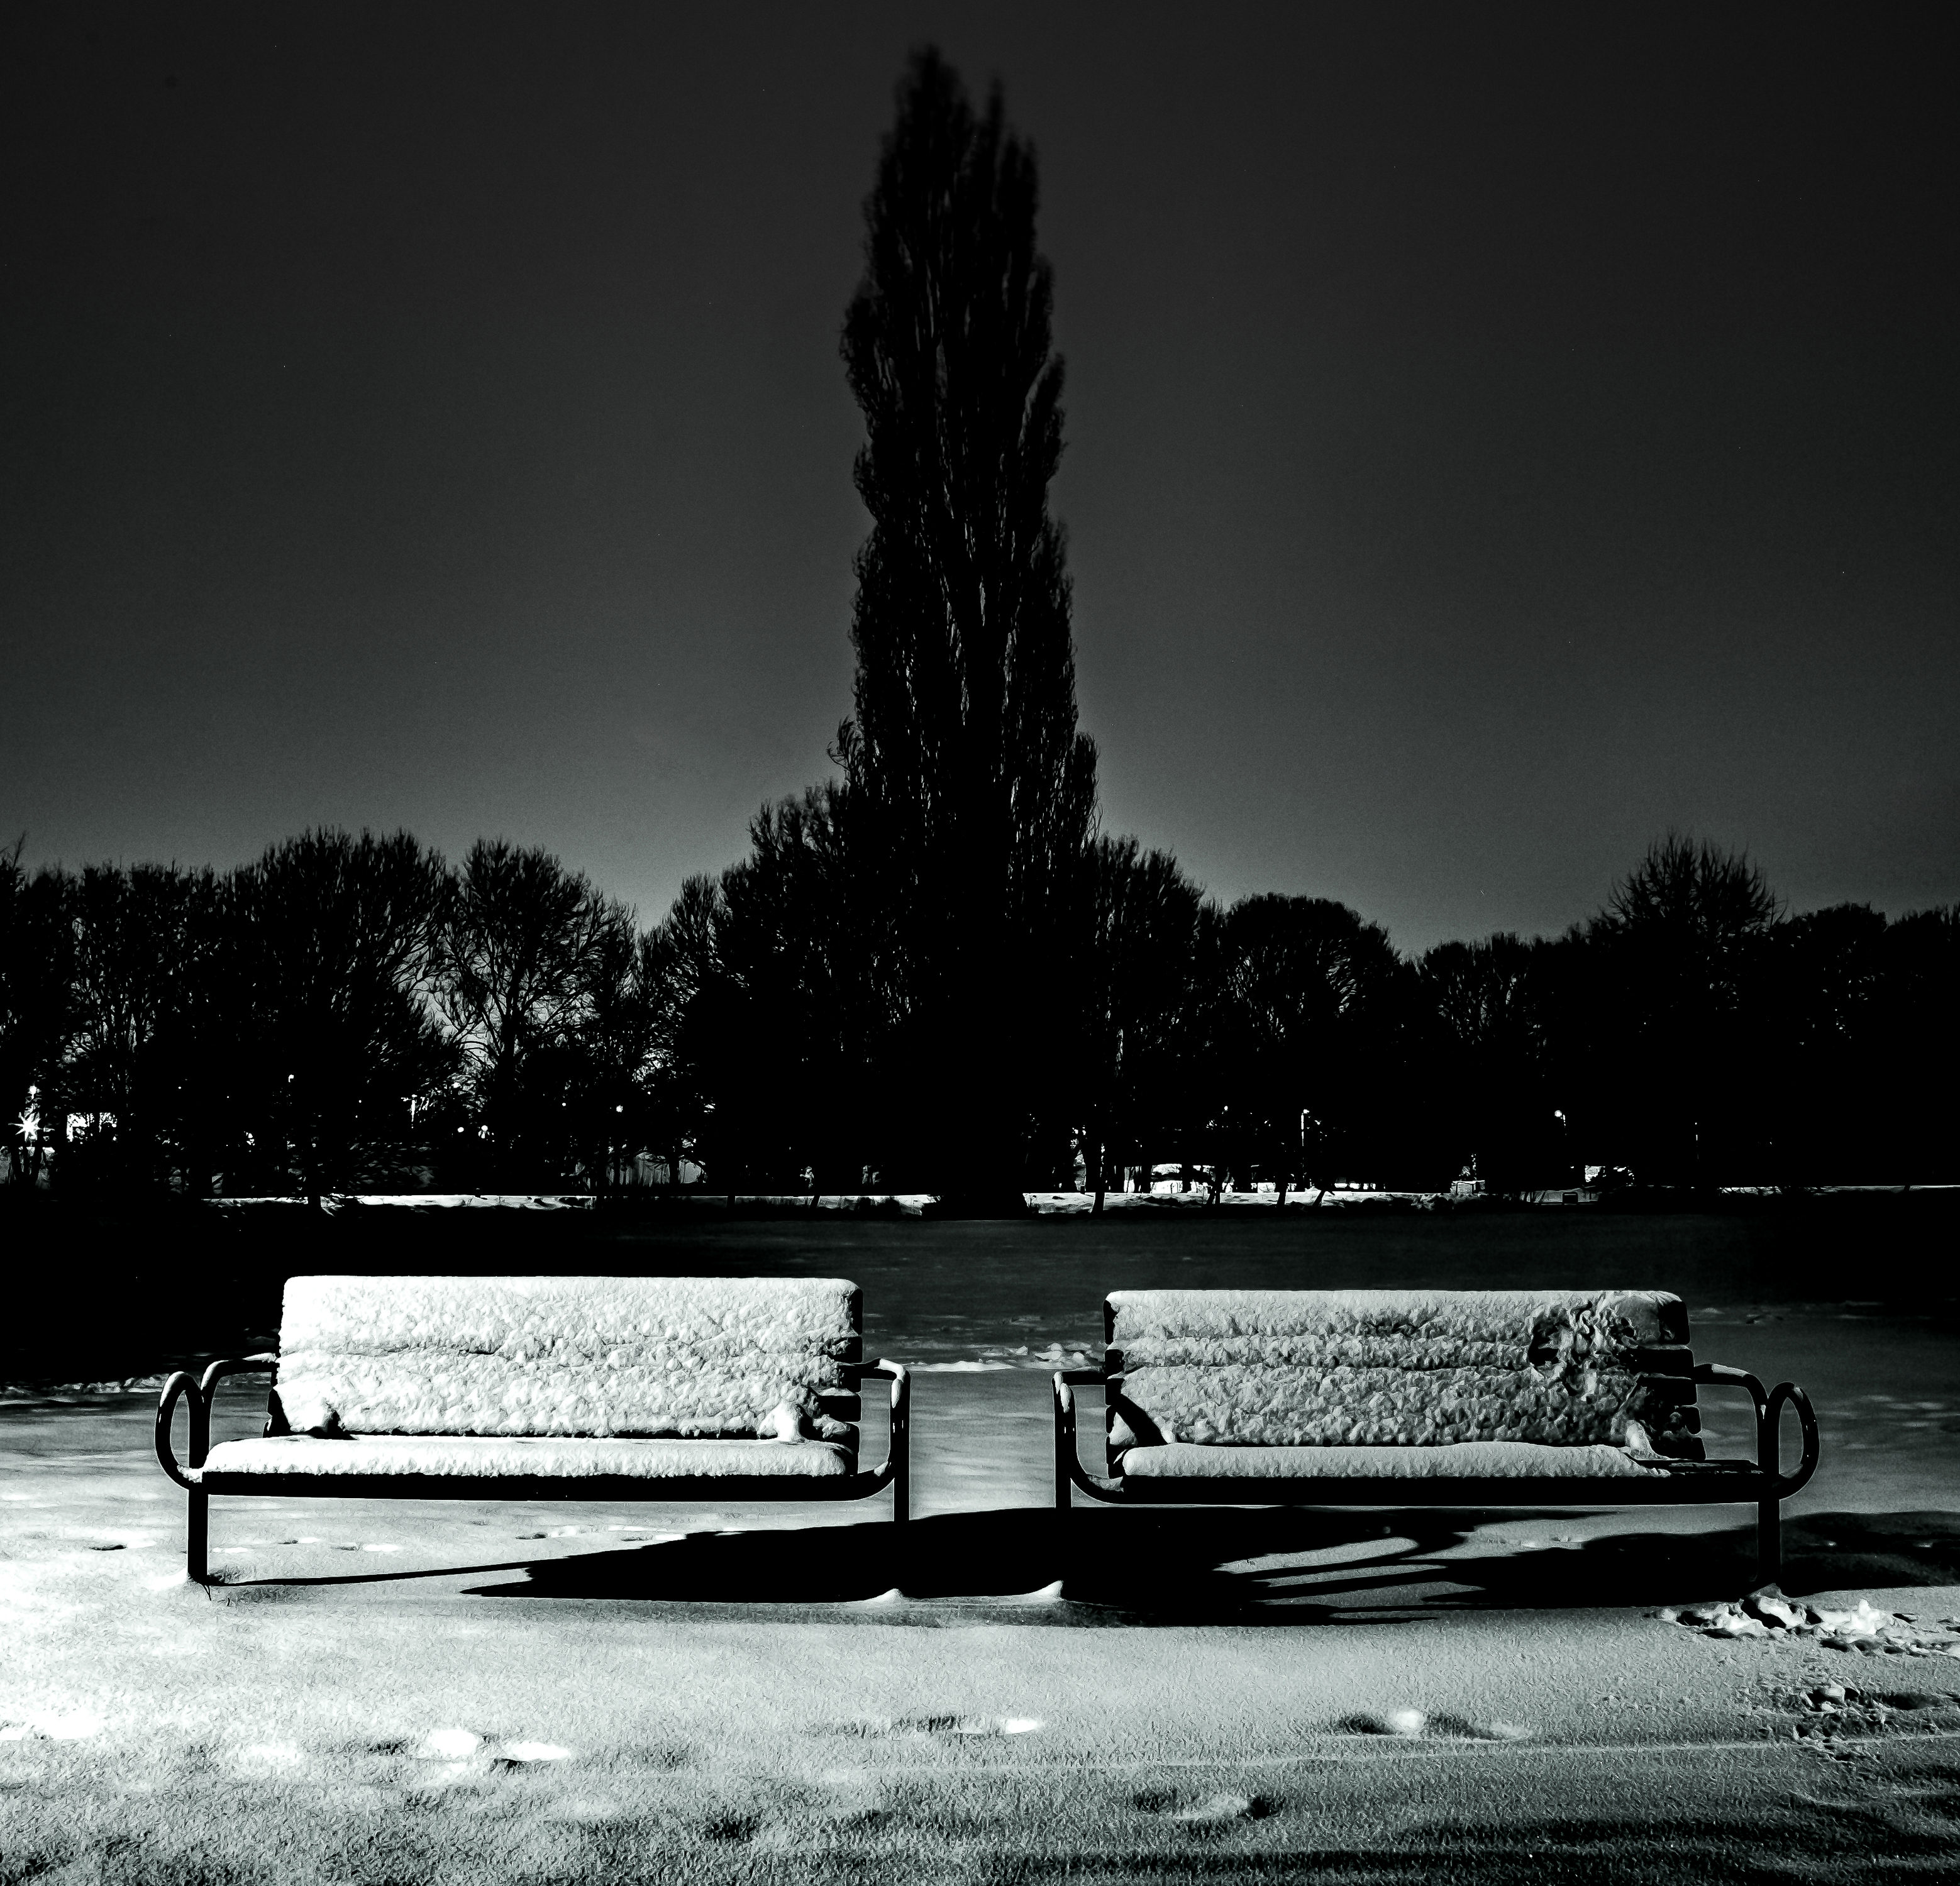 Snowy Benches by Mincingyoda